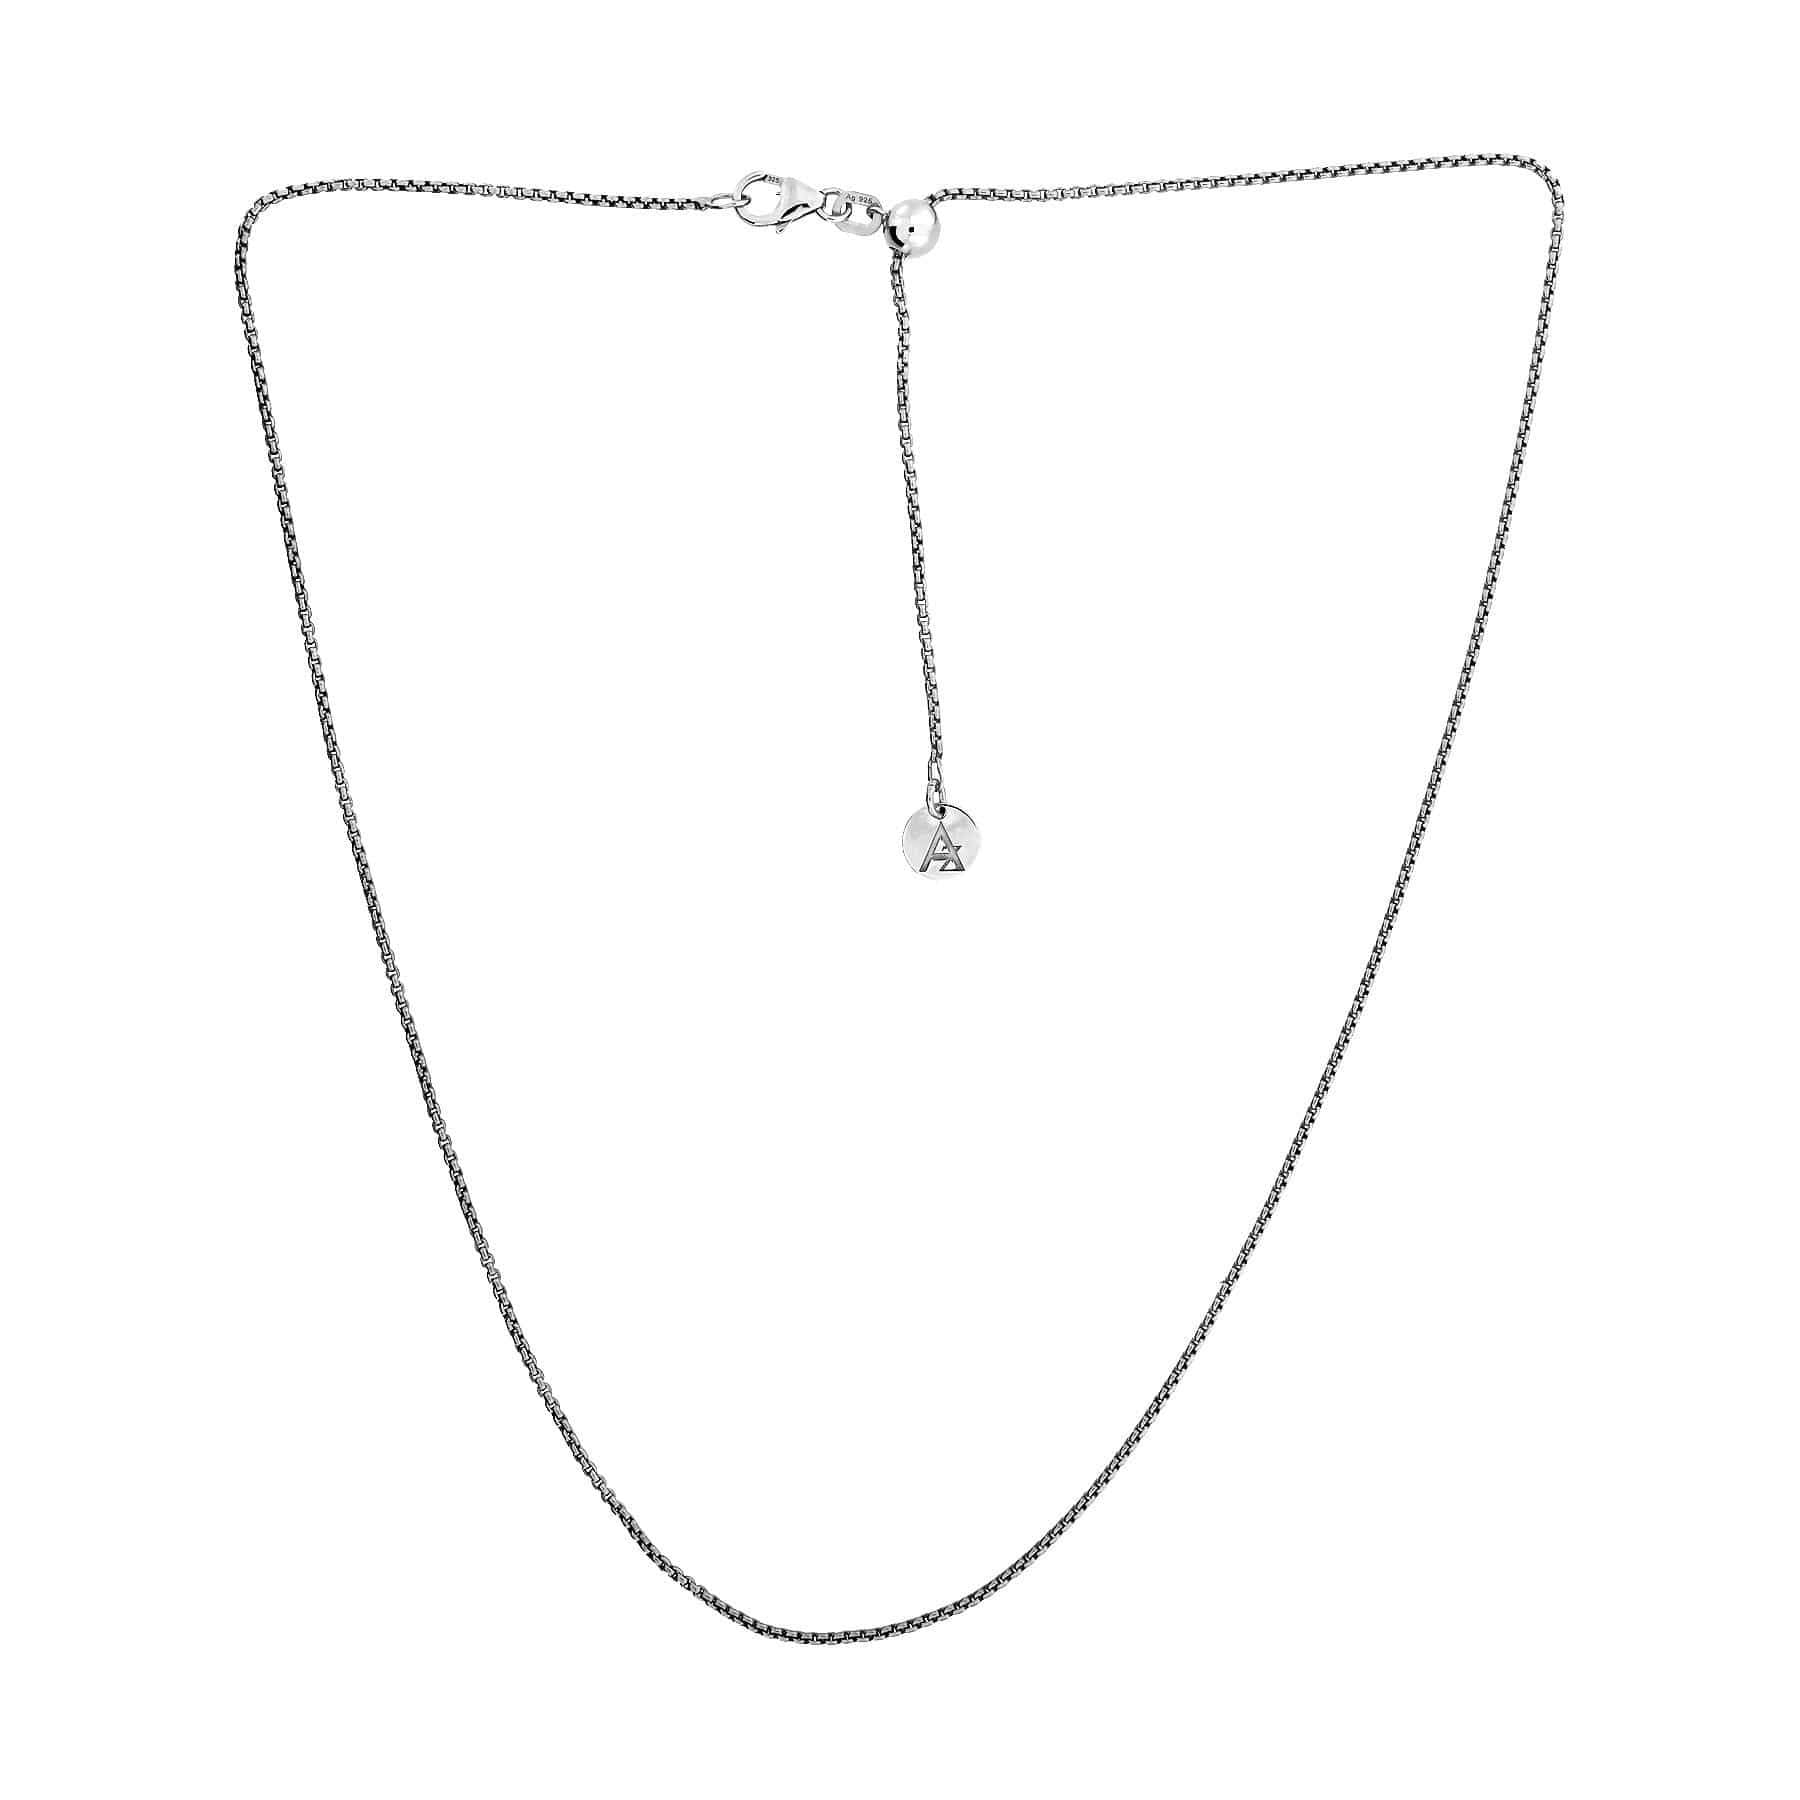 "Silver / Maximum 18"" Length Rollo Chain with Sliding Adjuster"